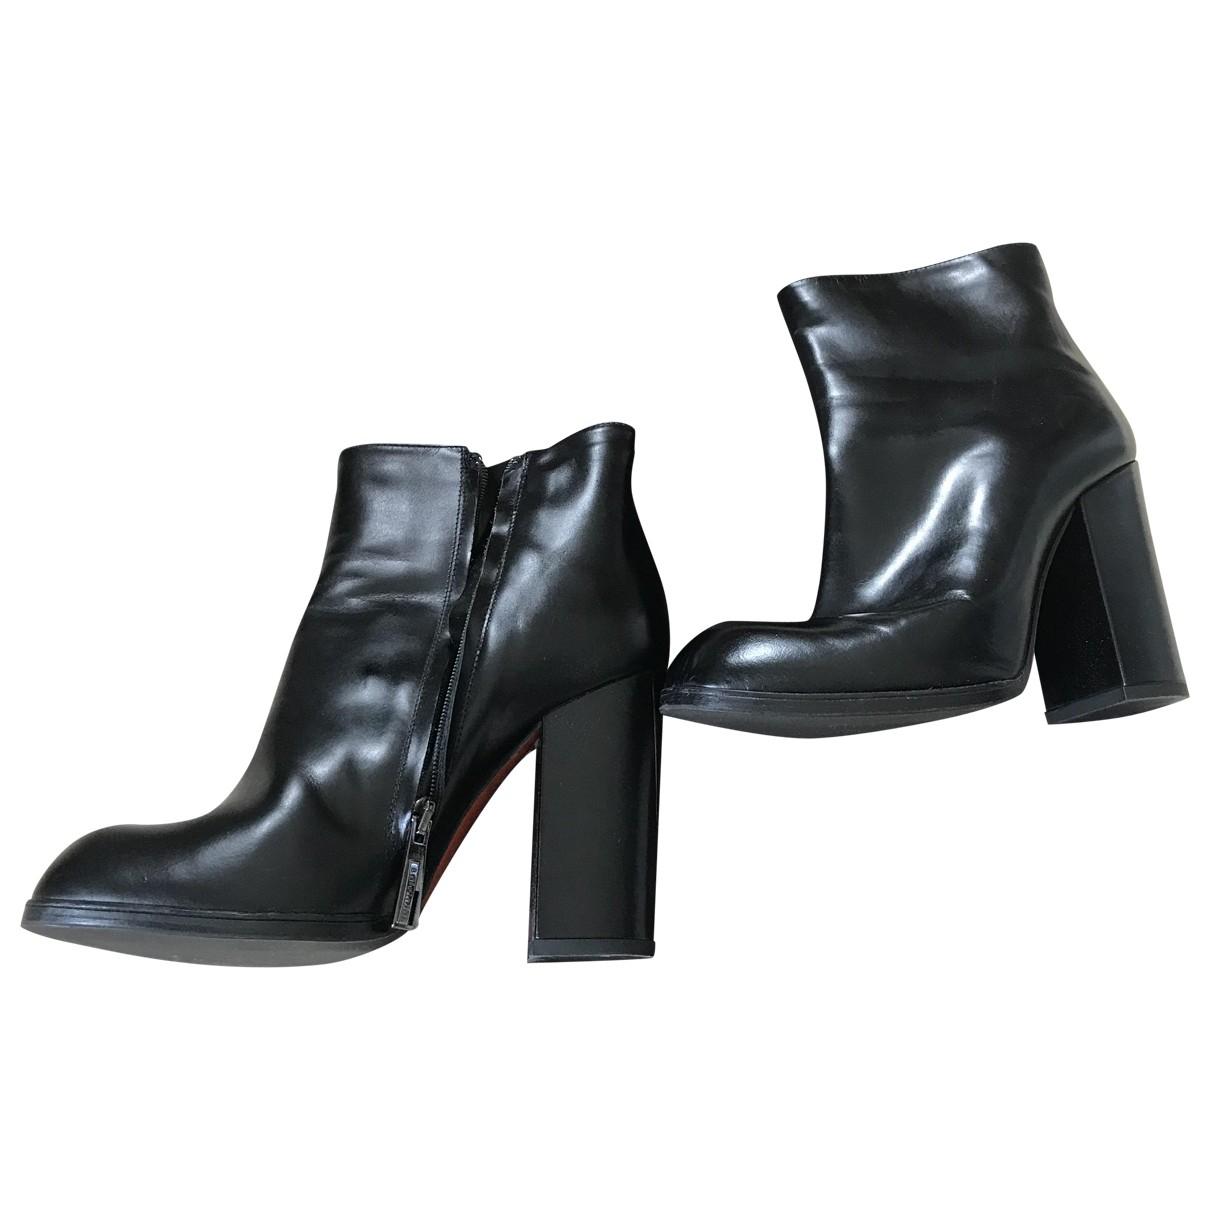 Baldinini \N Black Leather Boots for Women 37.5 EU